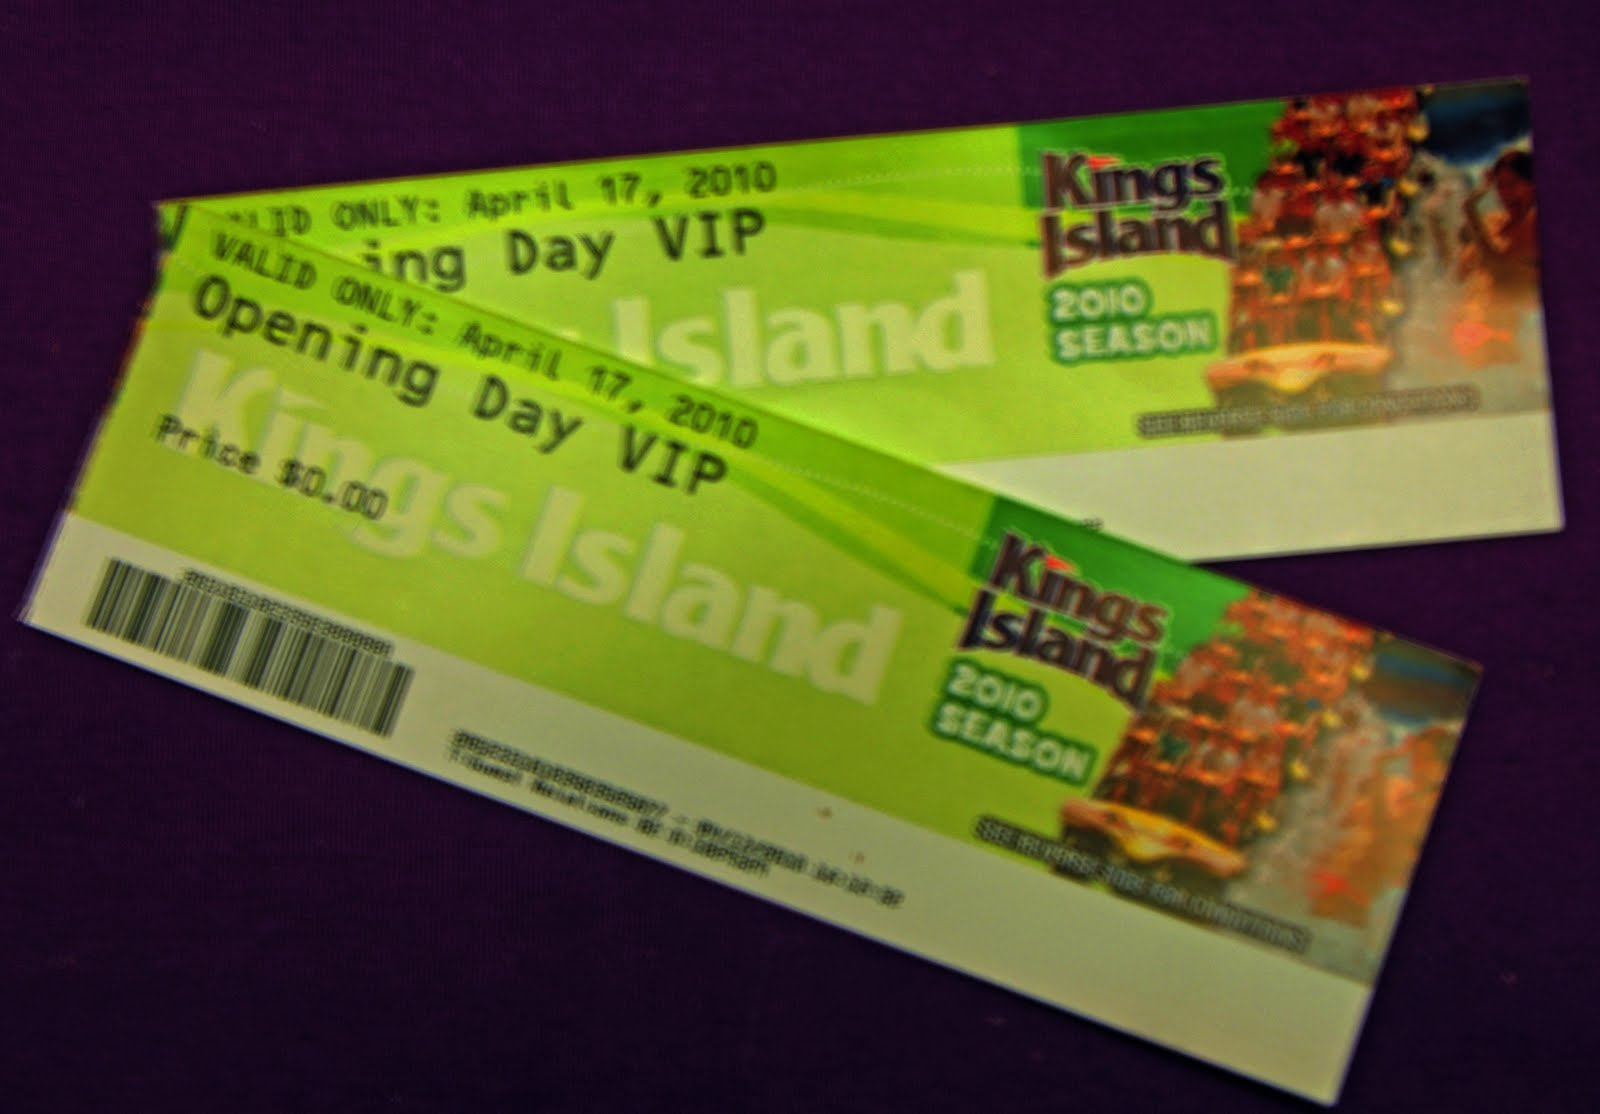 Kings Island Tickets At Kroger